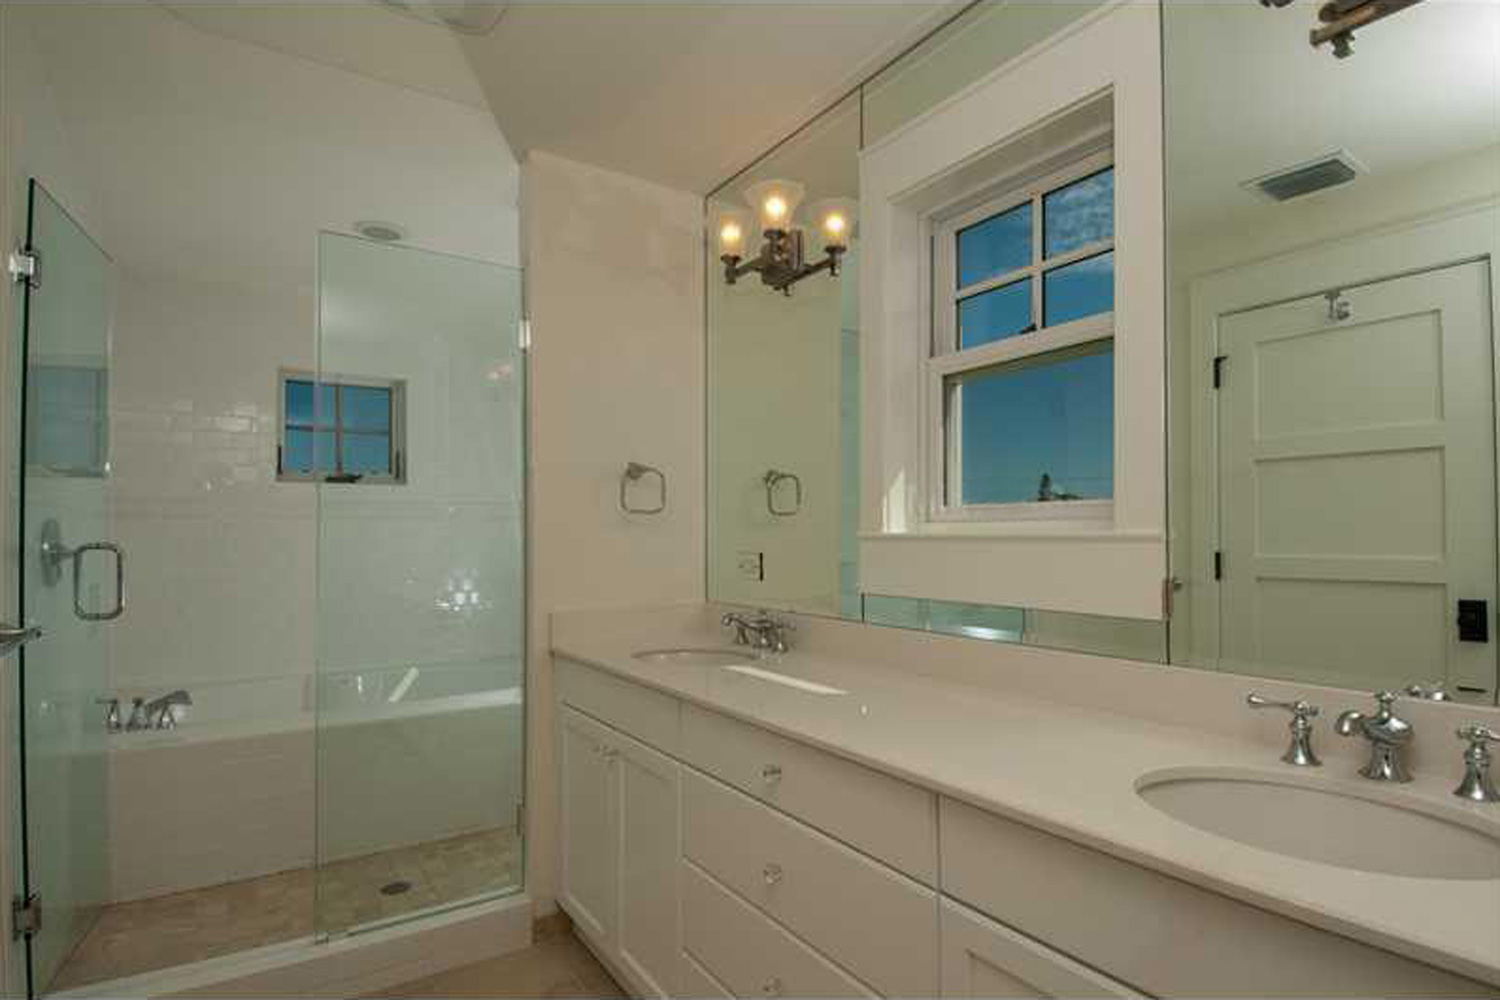 Bathroom at the St. Pete Beach house by OCV Architects.